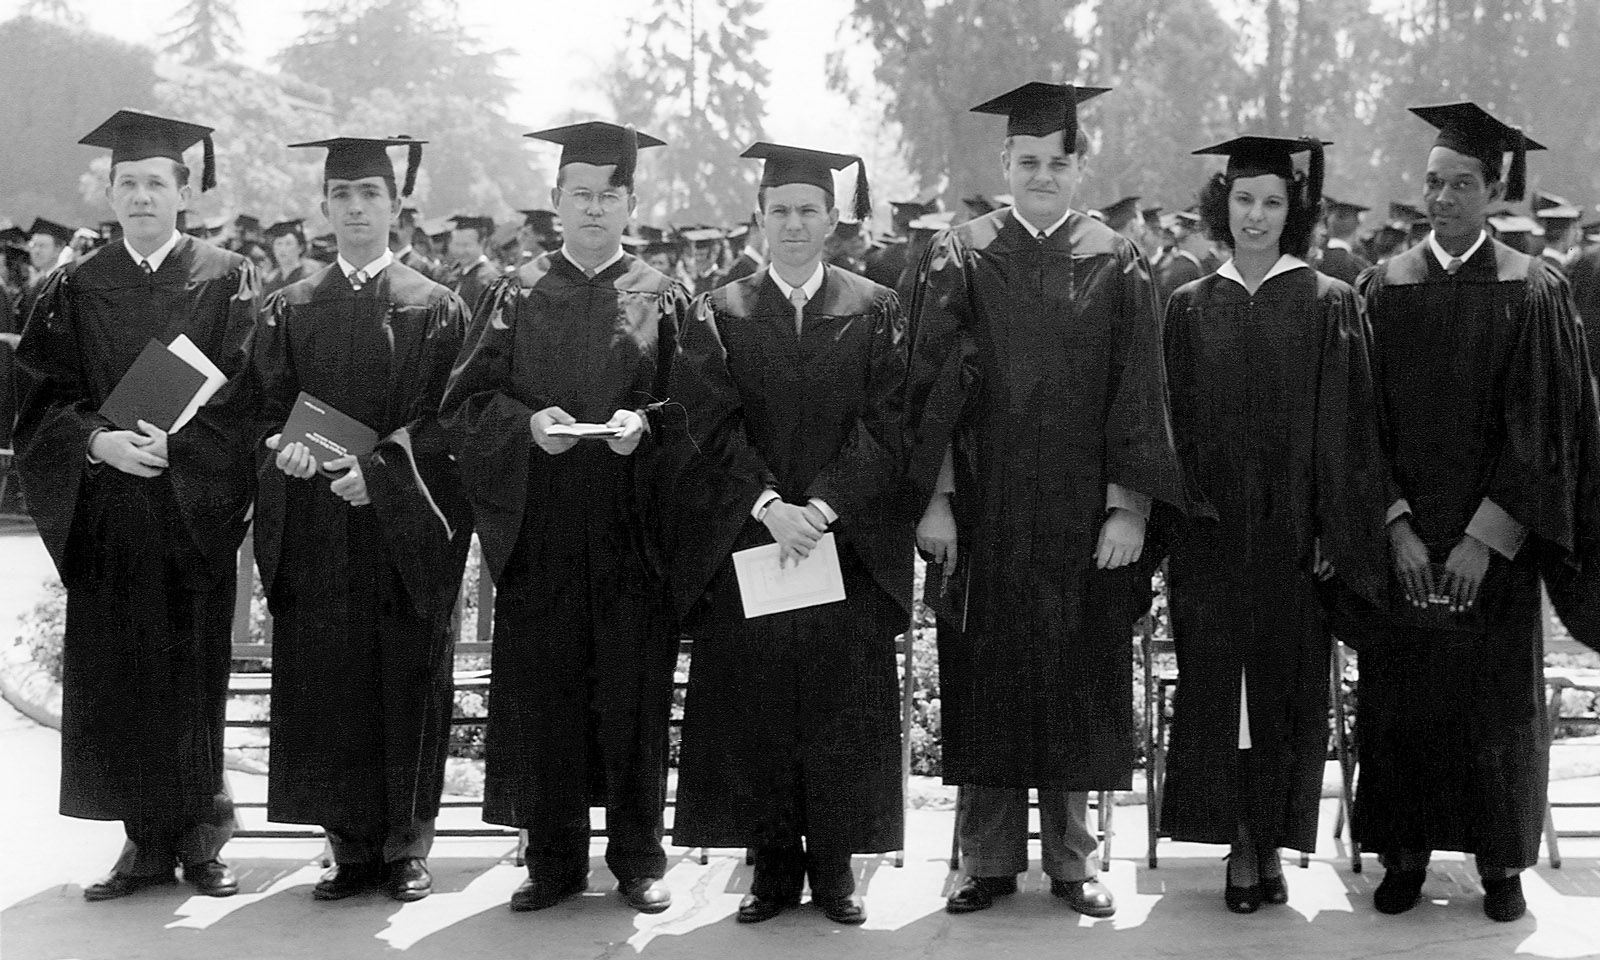 Some of the first graduates of Los Angeles State College in 1948 pose for a photo. This was officially the first Commencement, h